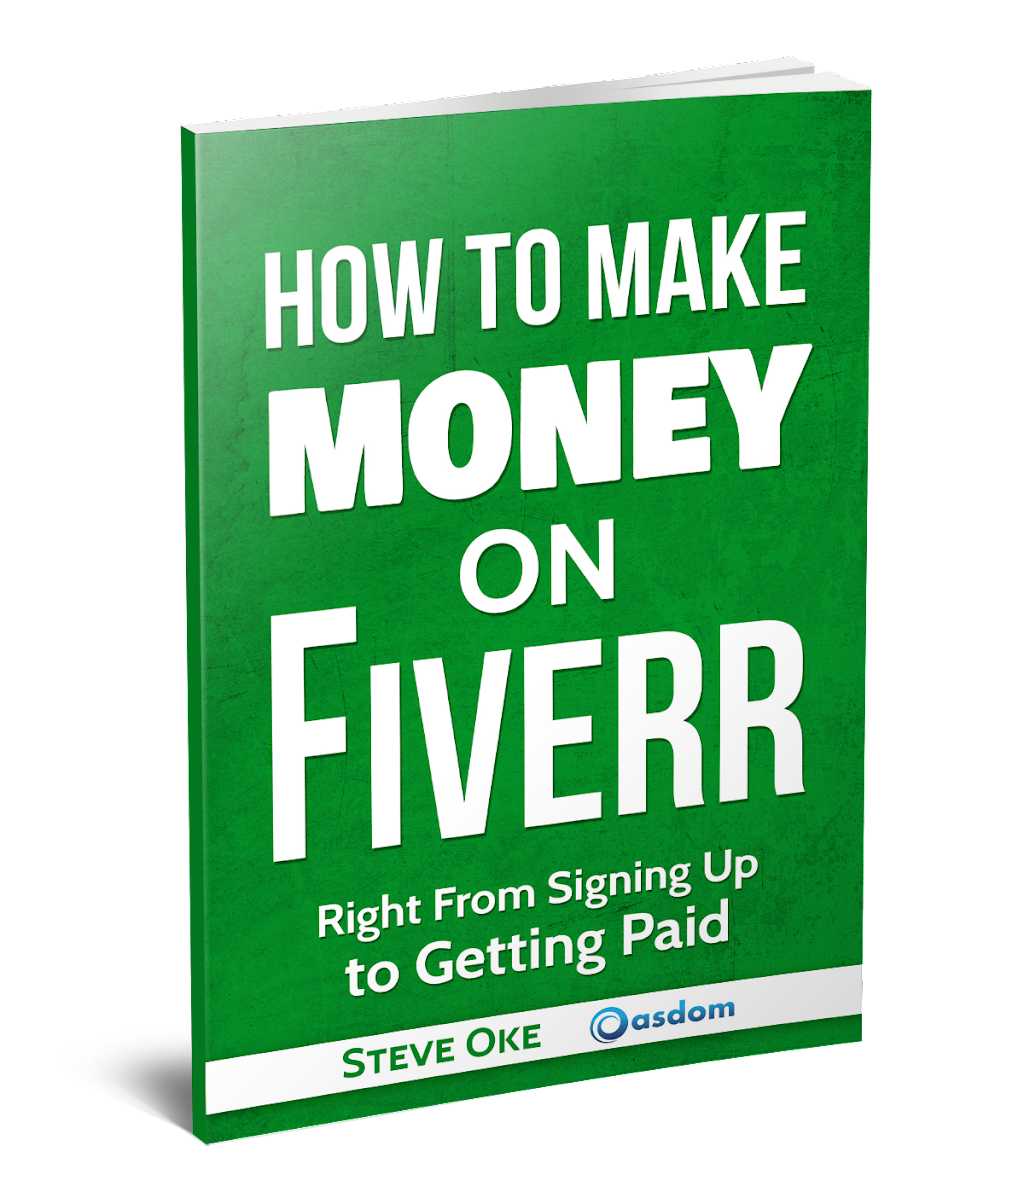 Learn how to make money on fiverr from signing up to getting paid